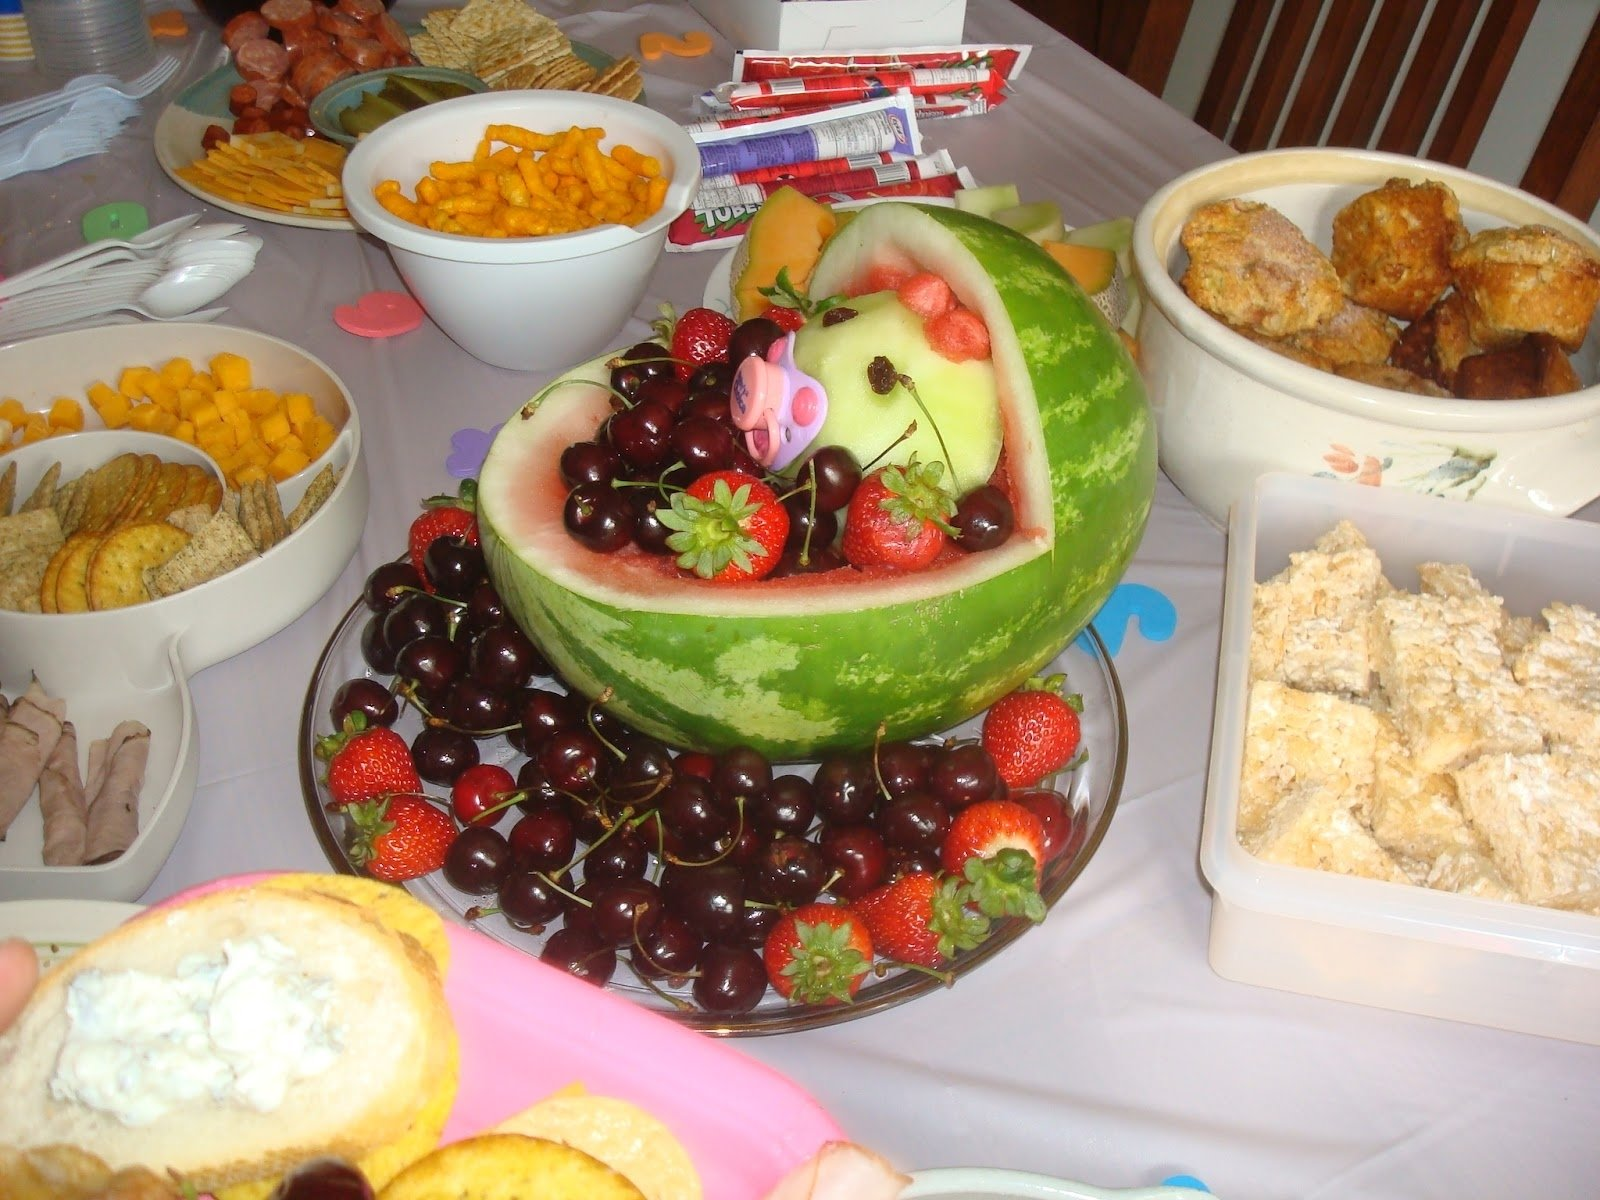 10 Stylish Food Ideas For A Baby Shower spectacular idea baby shower finger food ideas on a budget for photo 2020